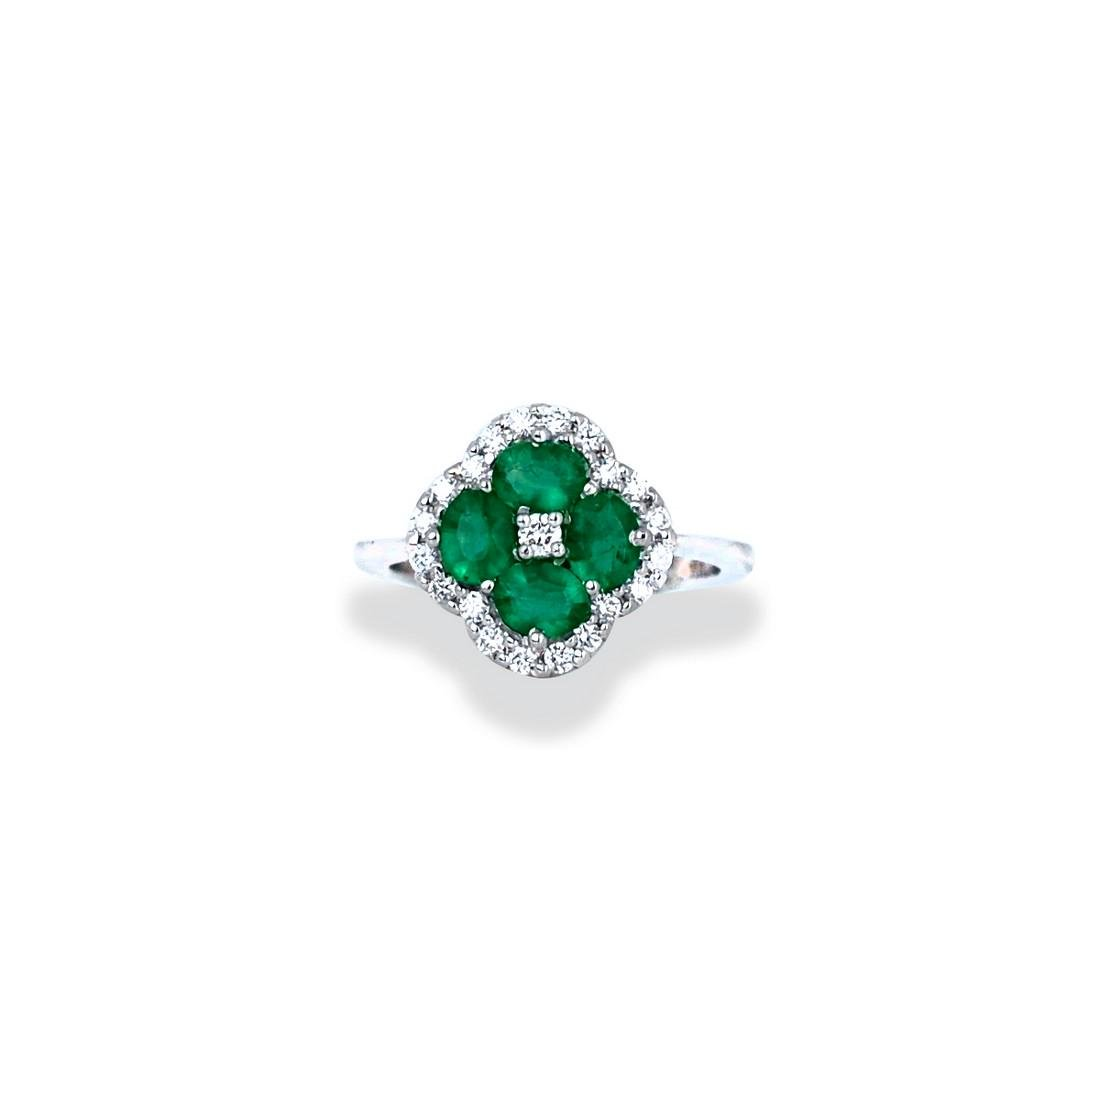 Emerald, 13 mm wide, white gold Clover Shaped Diamond